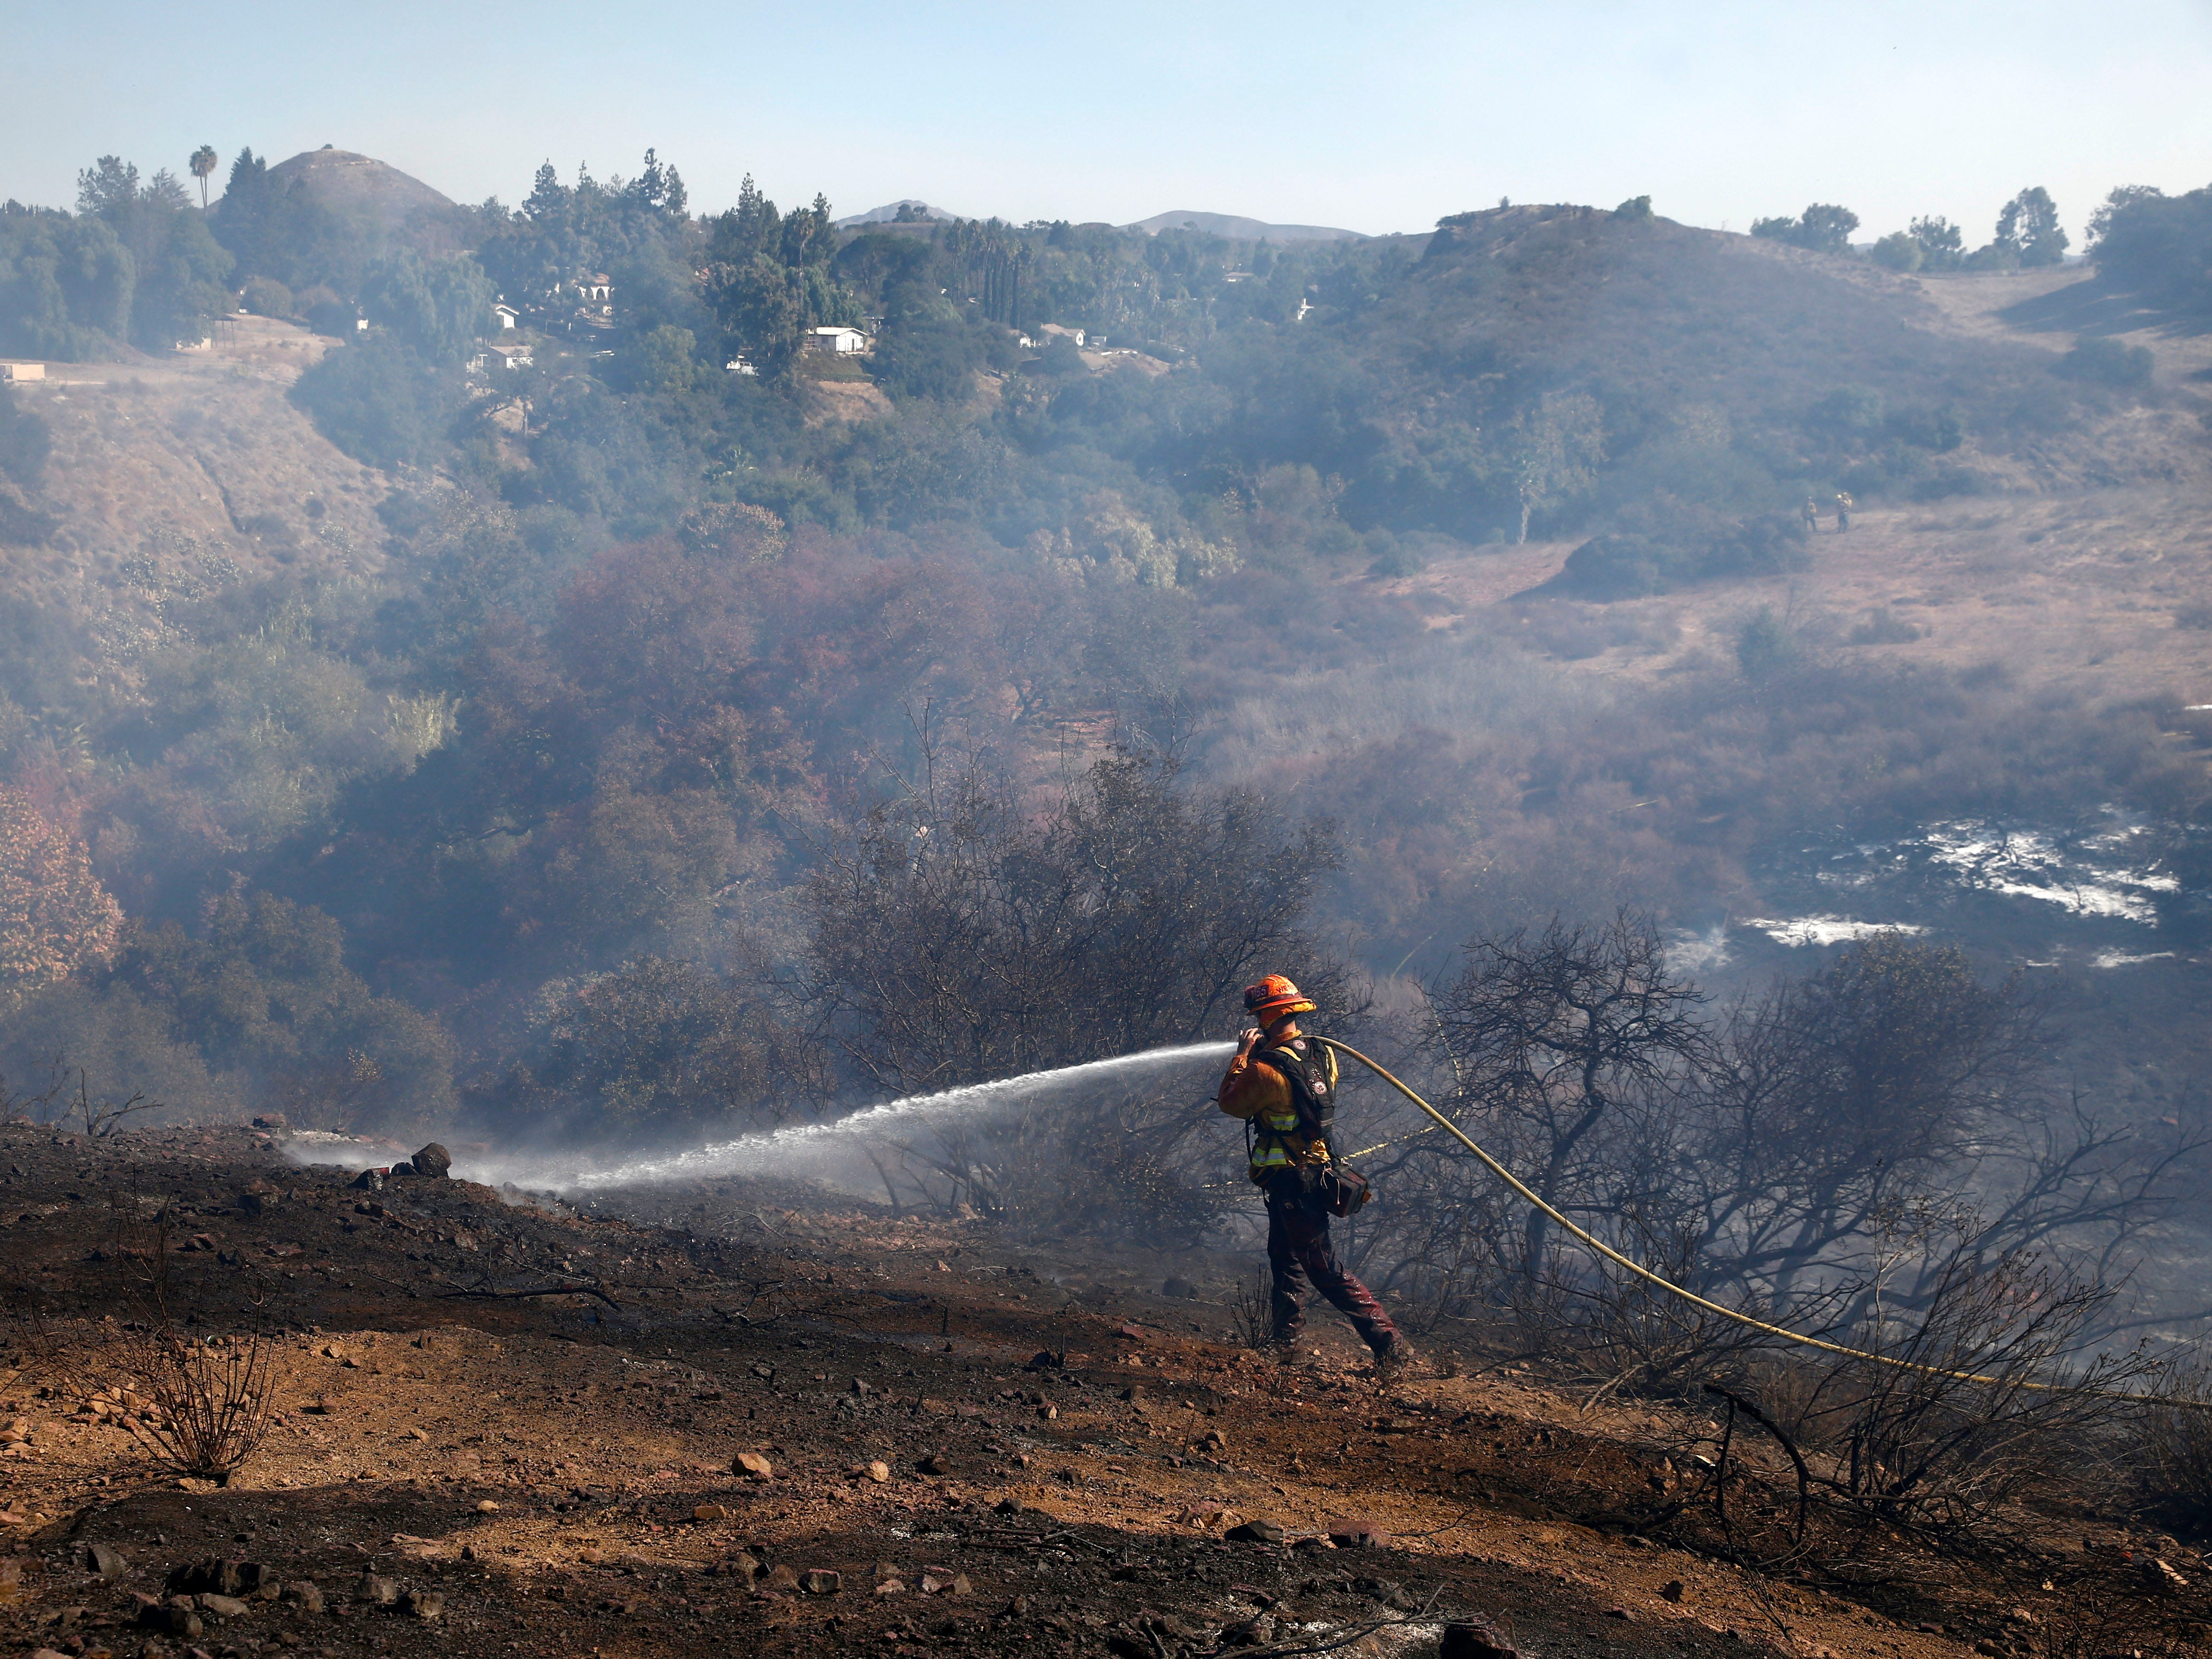 A firefighter puts out hotspots as the Hill Fire burns on Nov. 12, 2018, in Thousand Oaks, Calif.